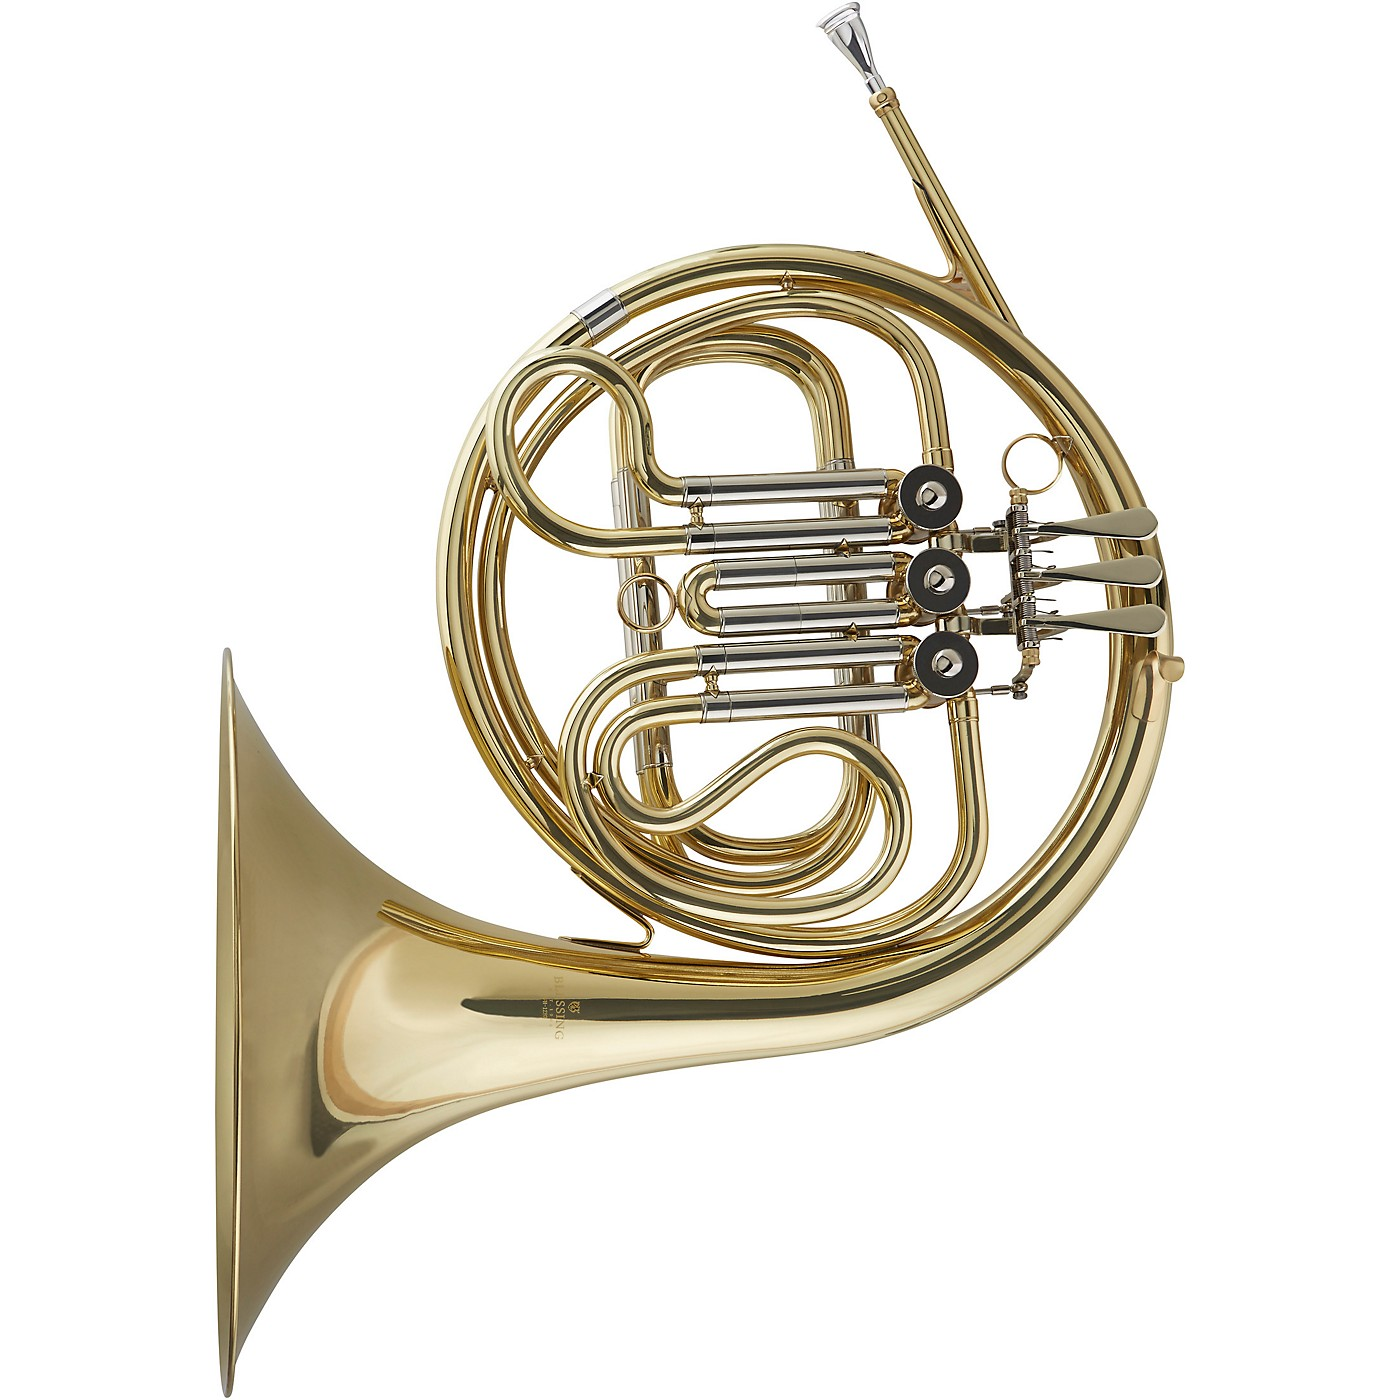 Blessing BFH-1287 Standard Series Single F French Horn thumbnail